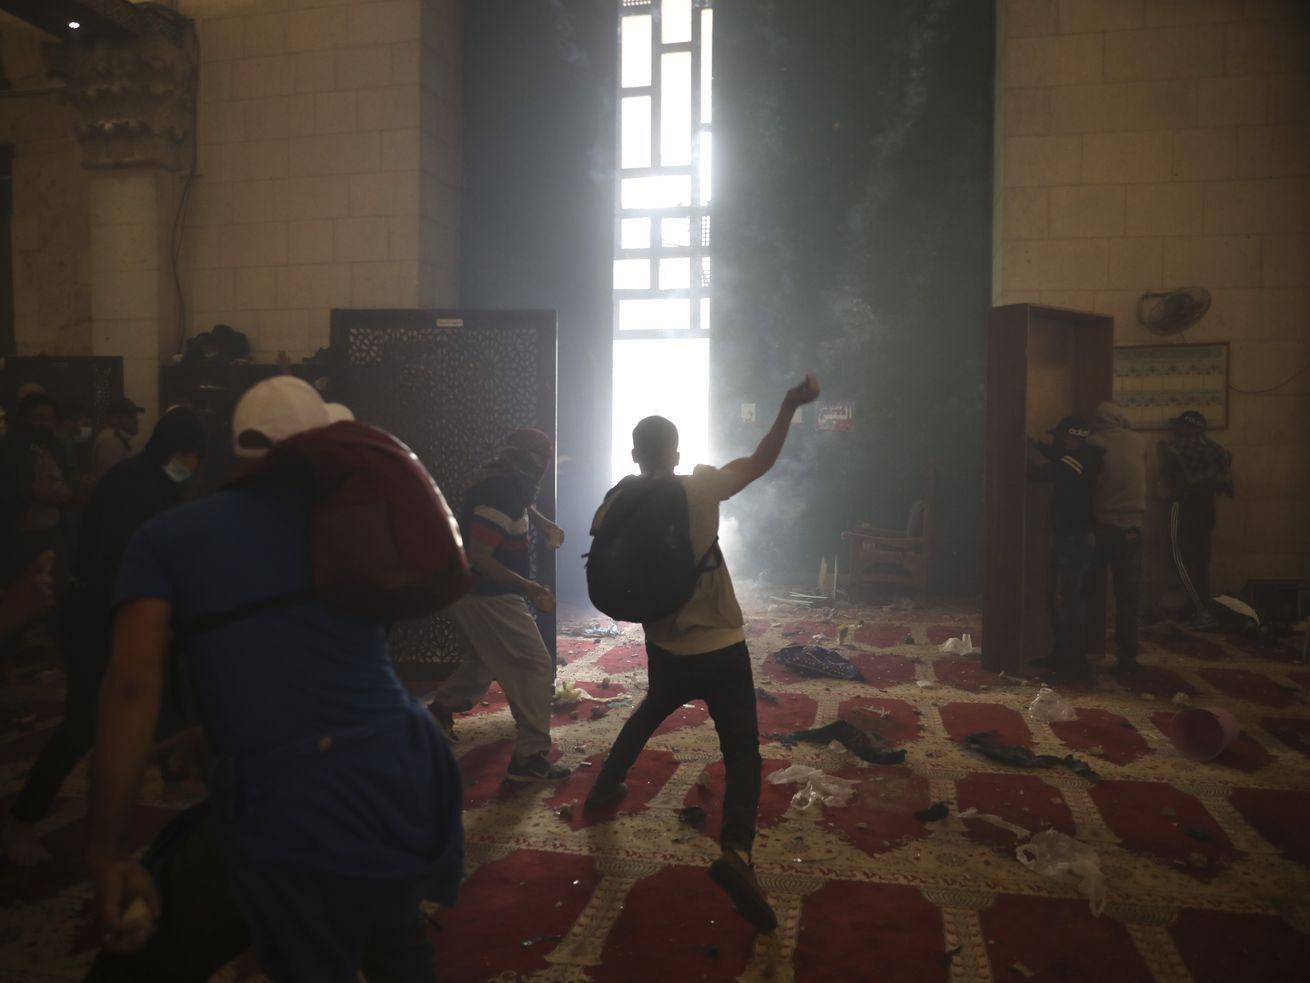 Palestinians inside the Al-Aqsa mosque clash with Israeli security forces at the Al Aqsa Mosque compound in Jerusalem's Old City Monday, May 10, 2021.